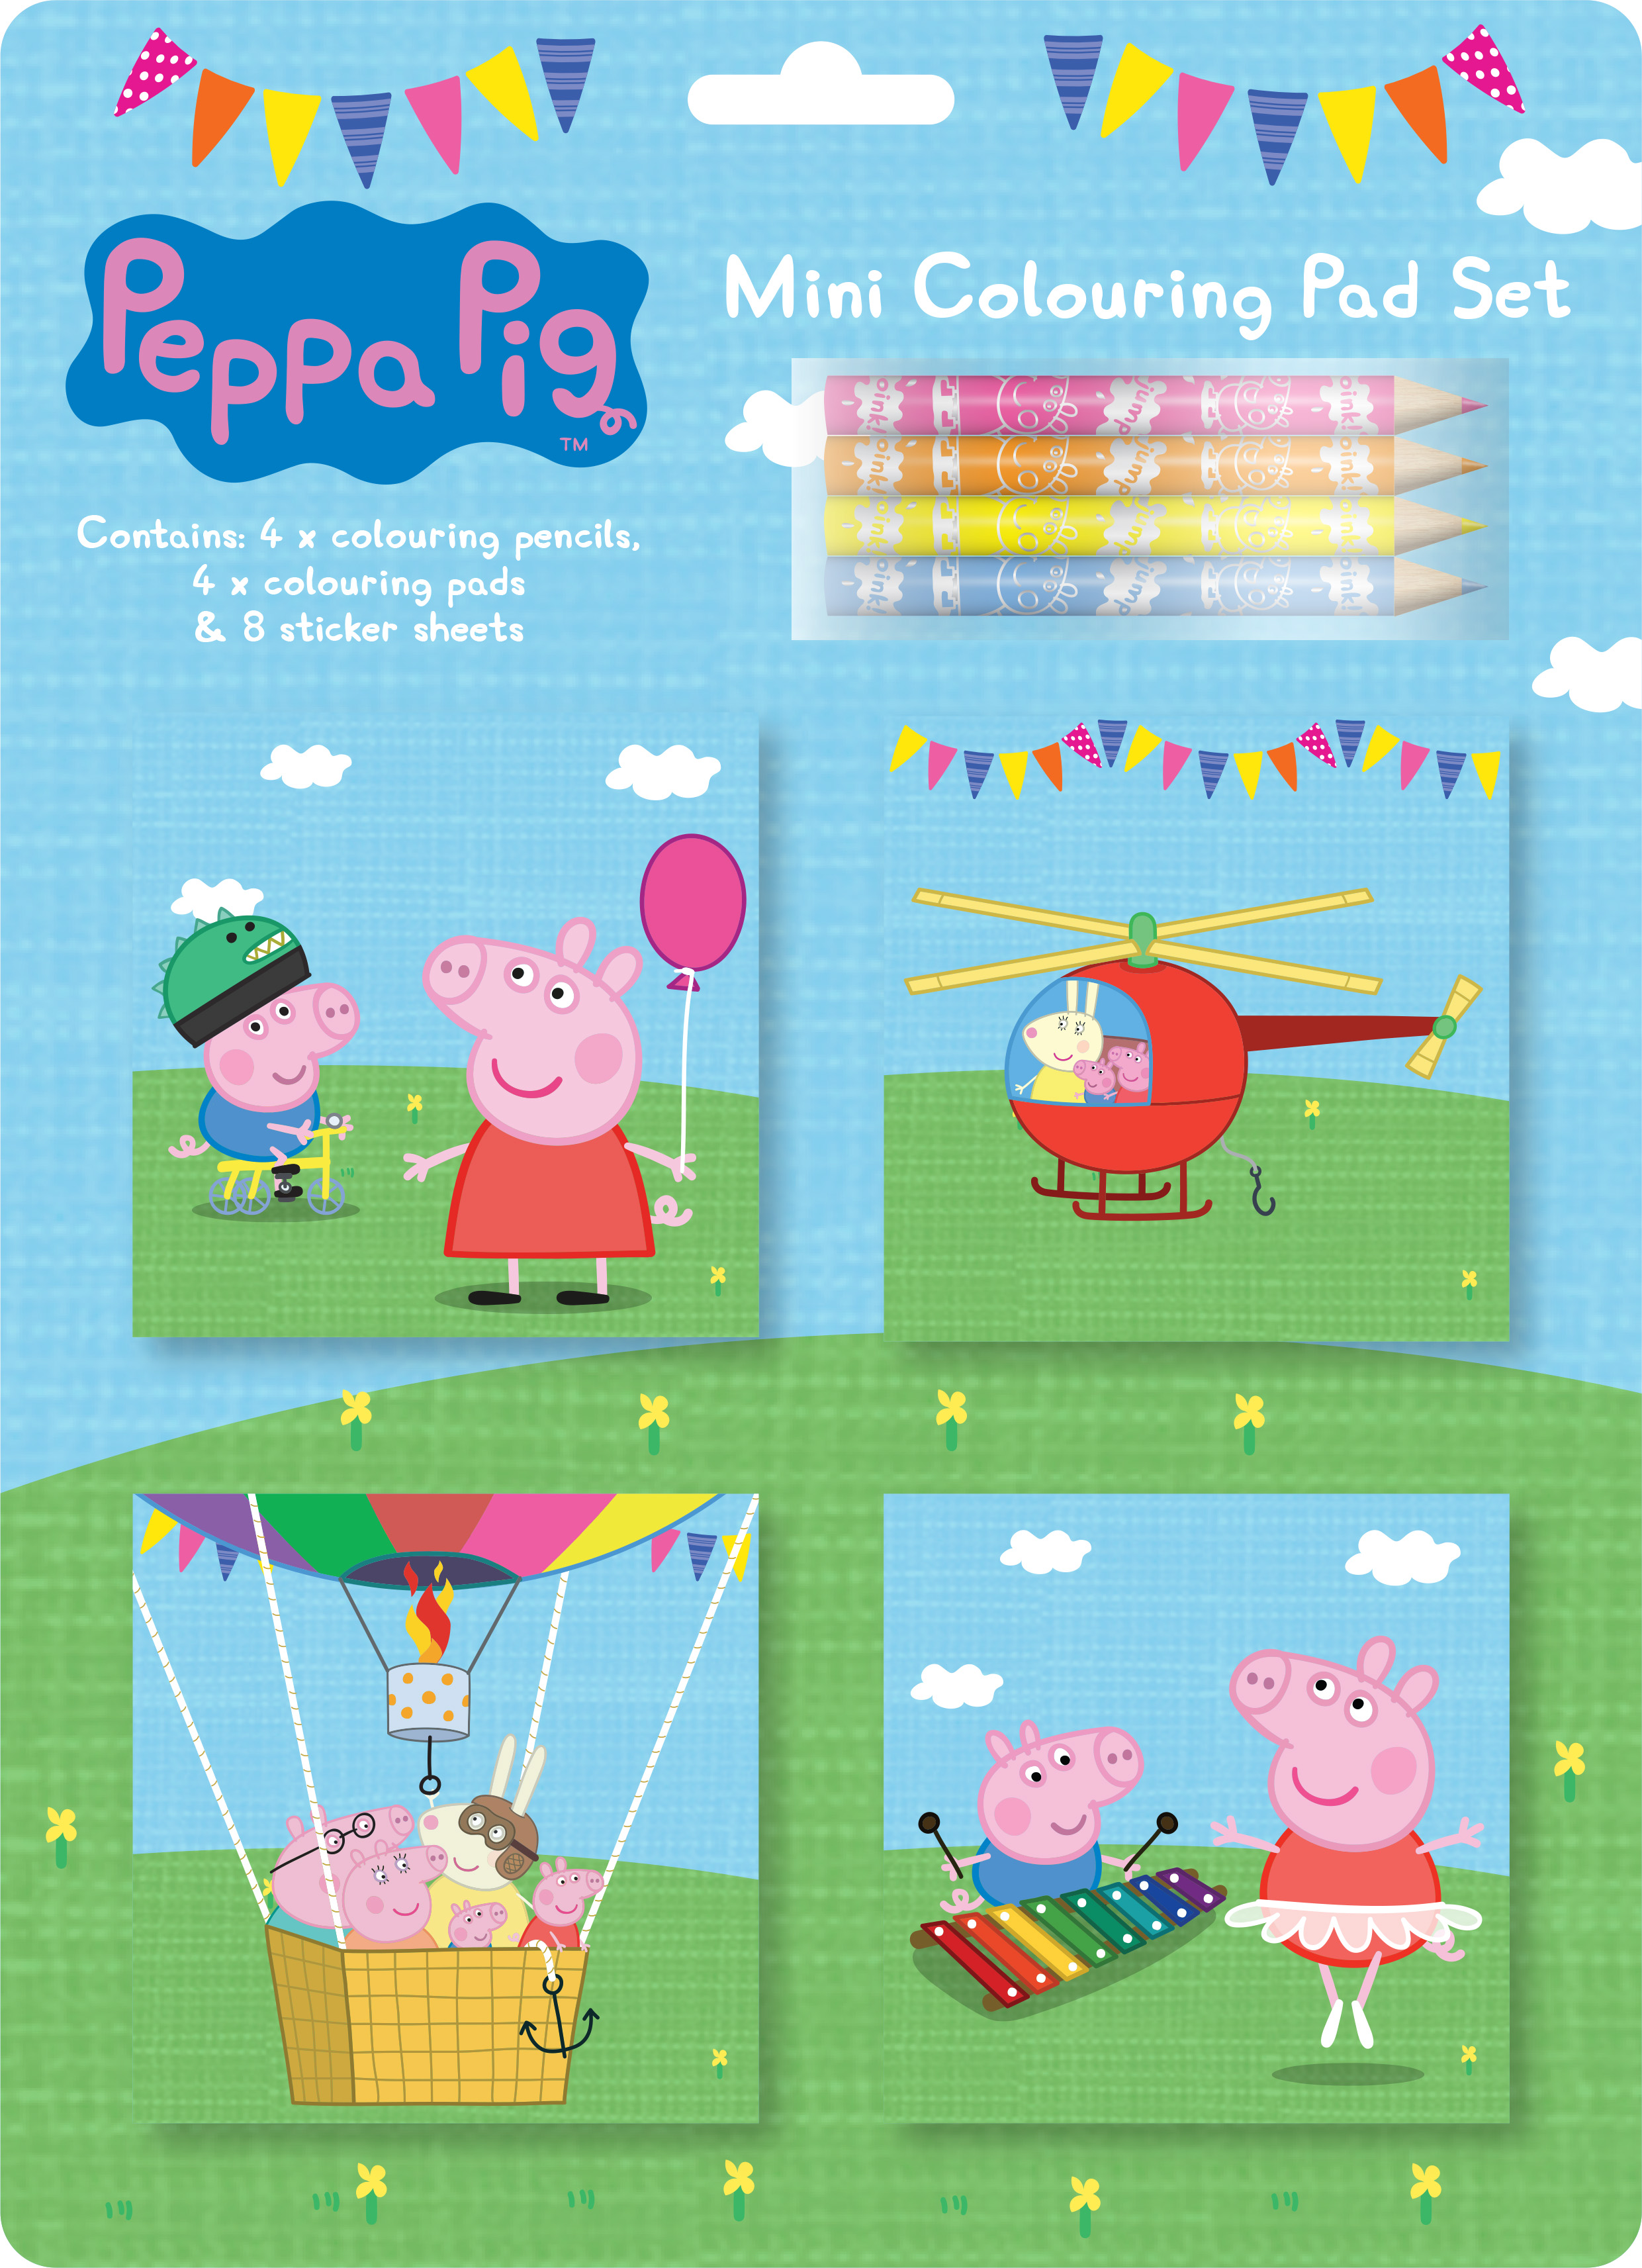 Pe peppa pig online coloring pages - Peppa Pig Mini Colouring Pad Set